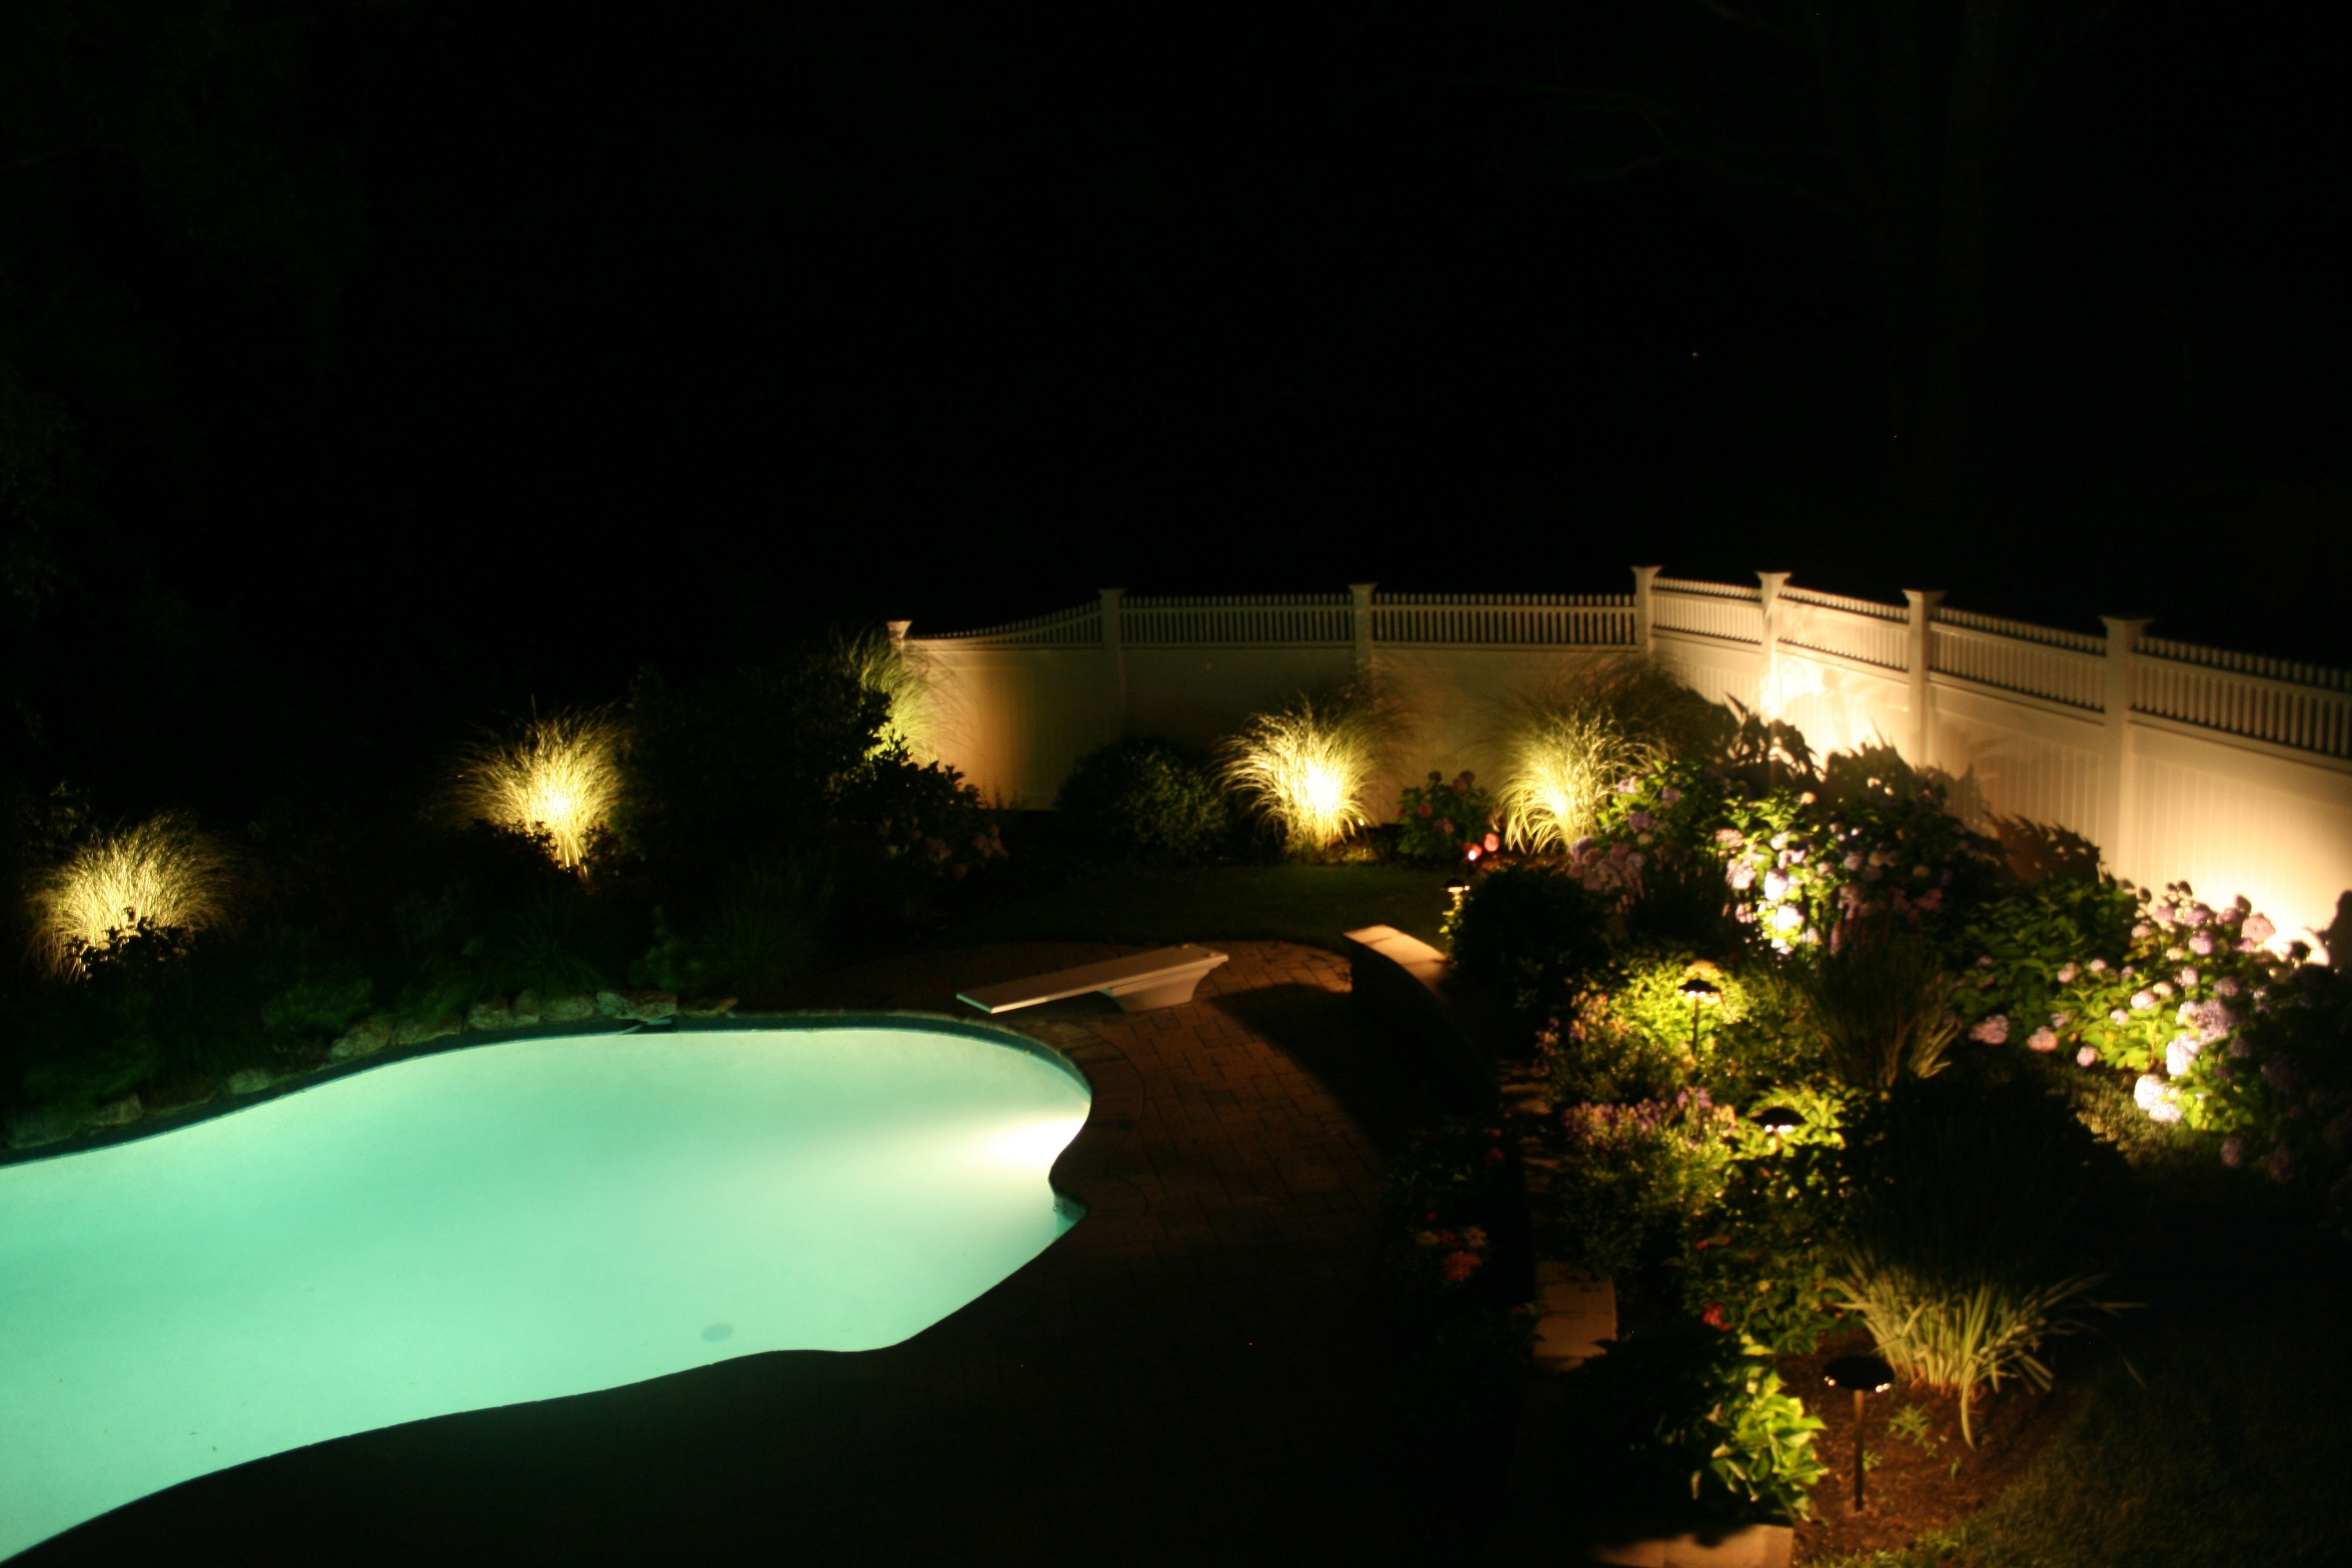 Landscaping With Regard To Outdoor Lanterns For Poolside (View 6 of 20)